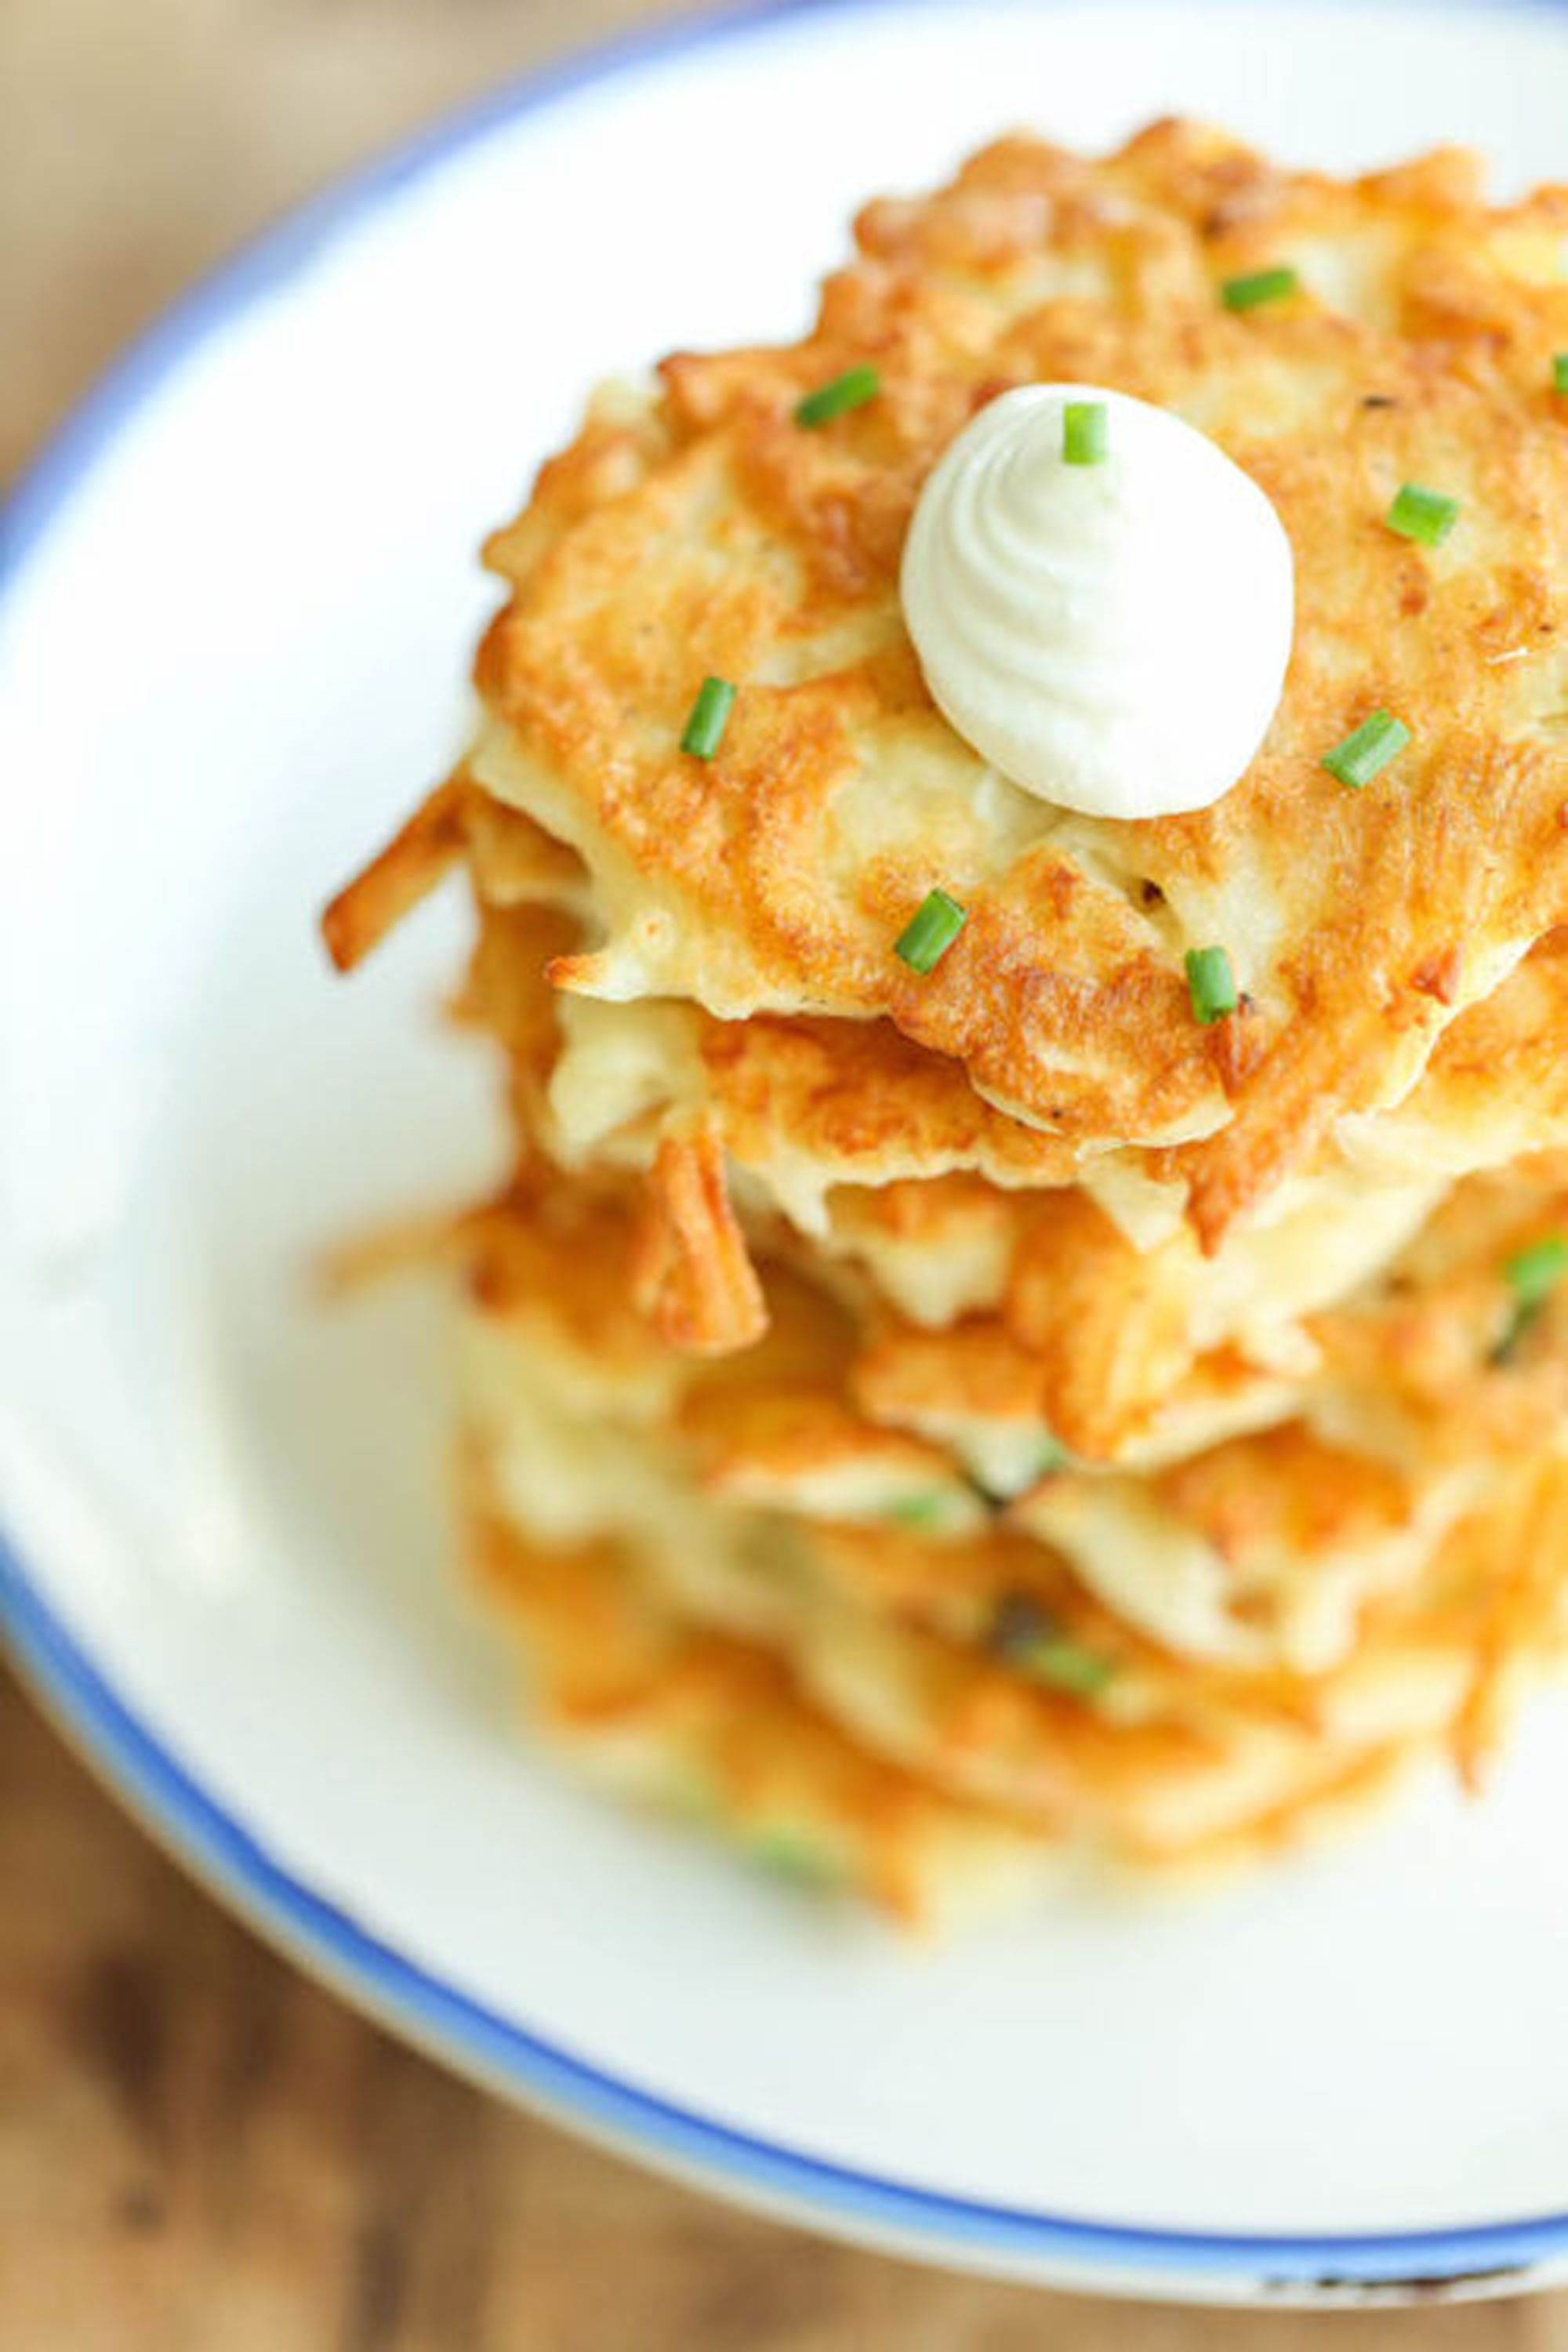 A delicious potato in a country: two interesting recipes 5